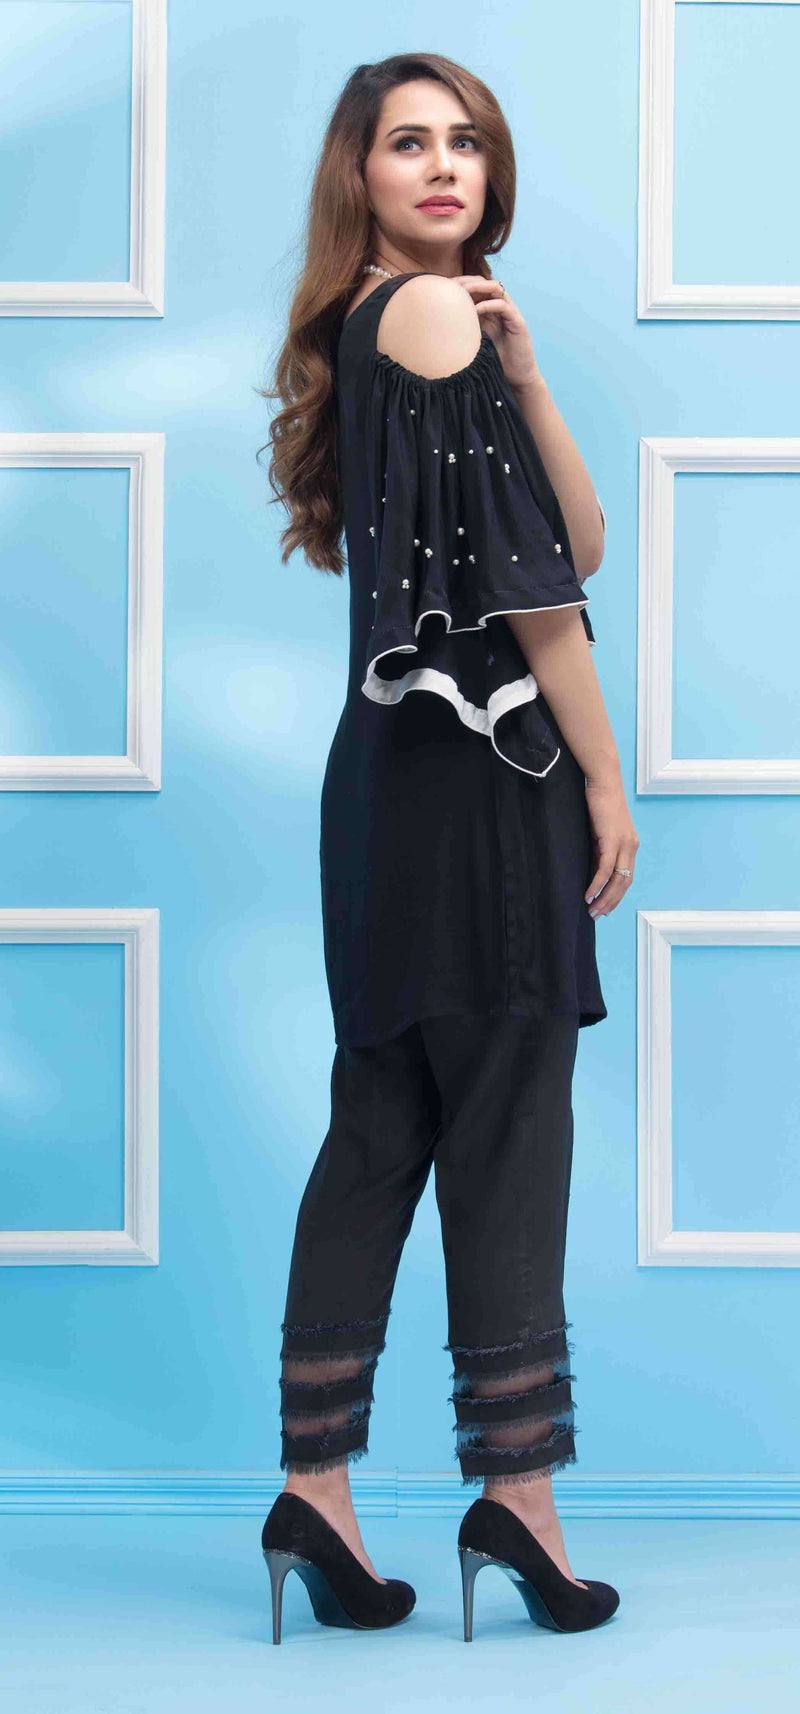 Luxury Pret, Pakistani Fashion Designer SPRING BLACK - Phatyma Khan